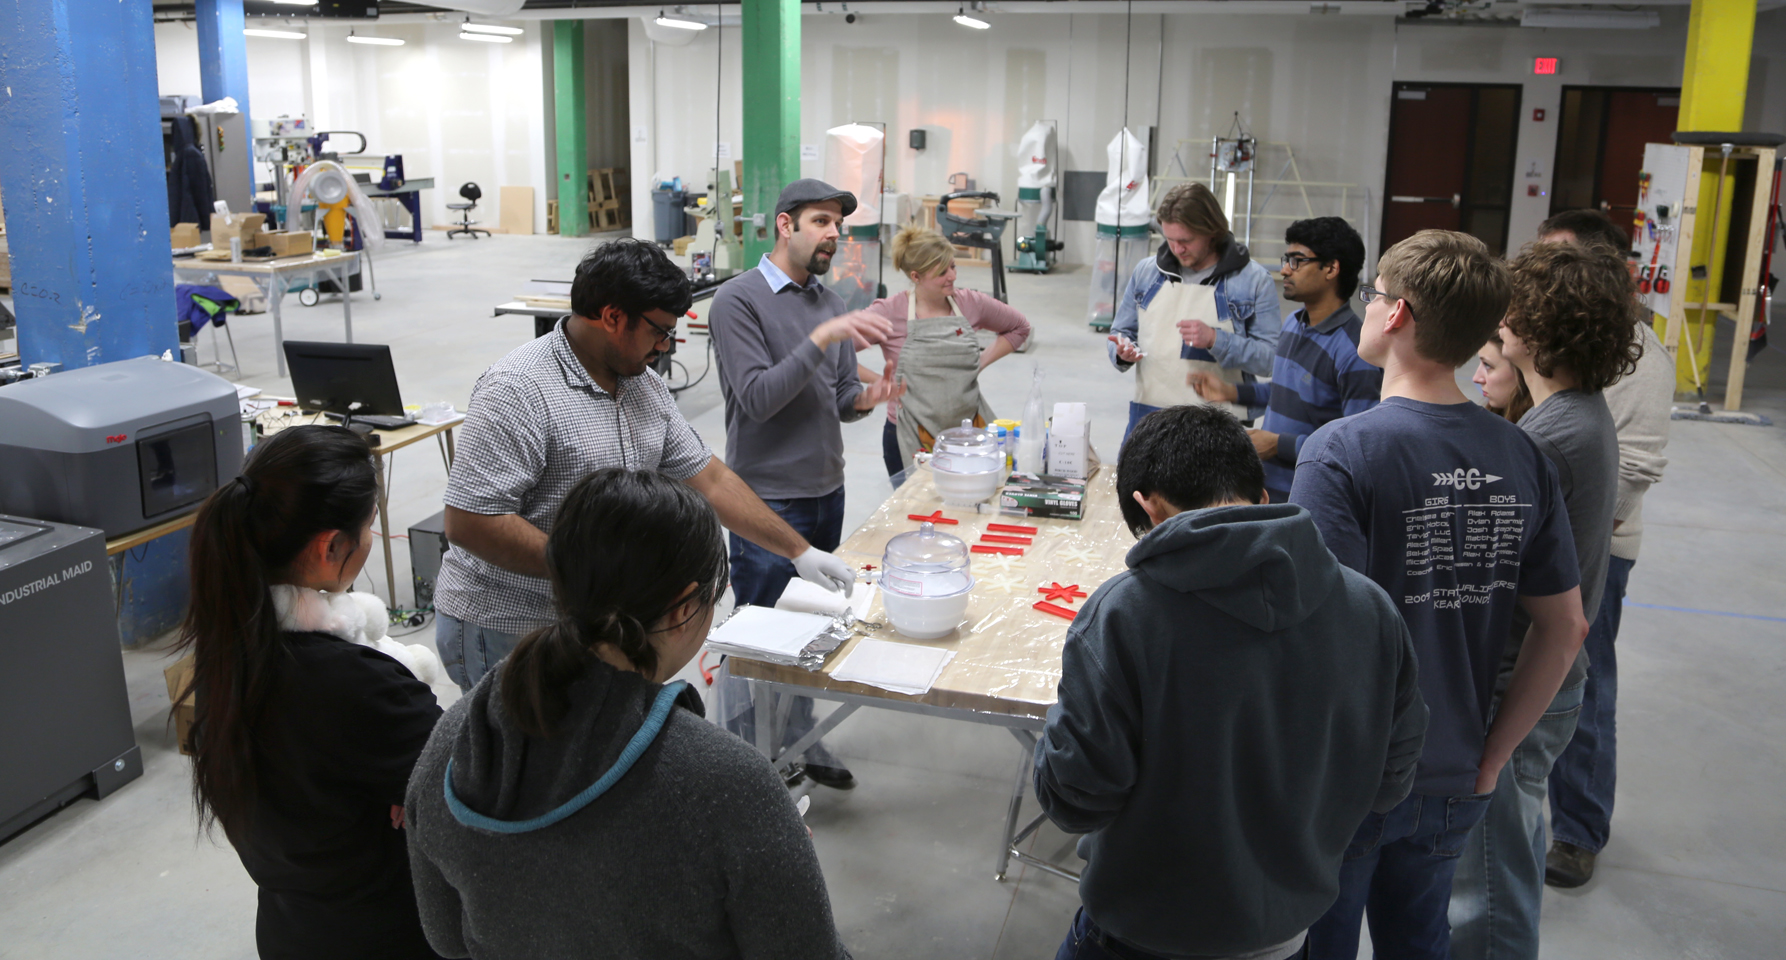 Students listen to a presentation led by Stephen Morin, assistant professor of chemistry, in Nebraska Innovation Studio. A grant from the Cooper Foundation will expand the maker space, which is located at Nebraska Innovation Campus.